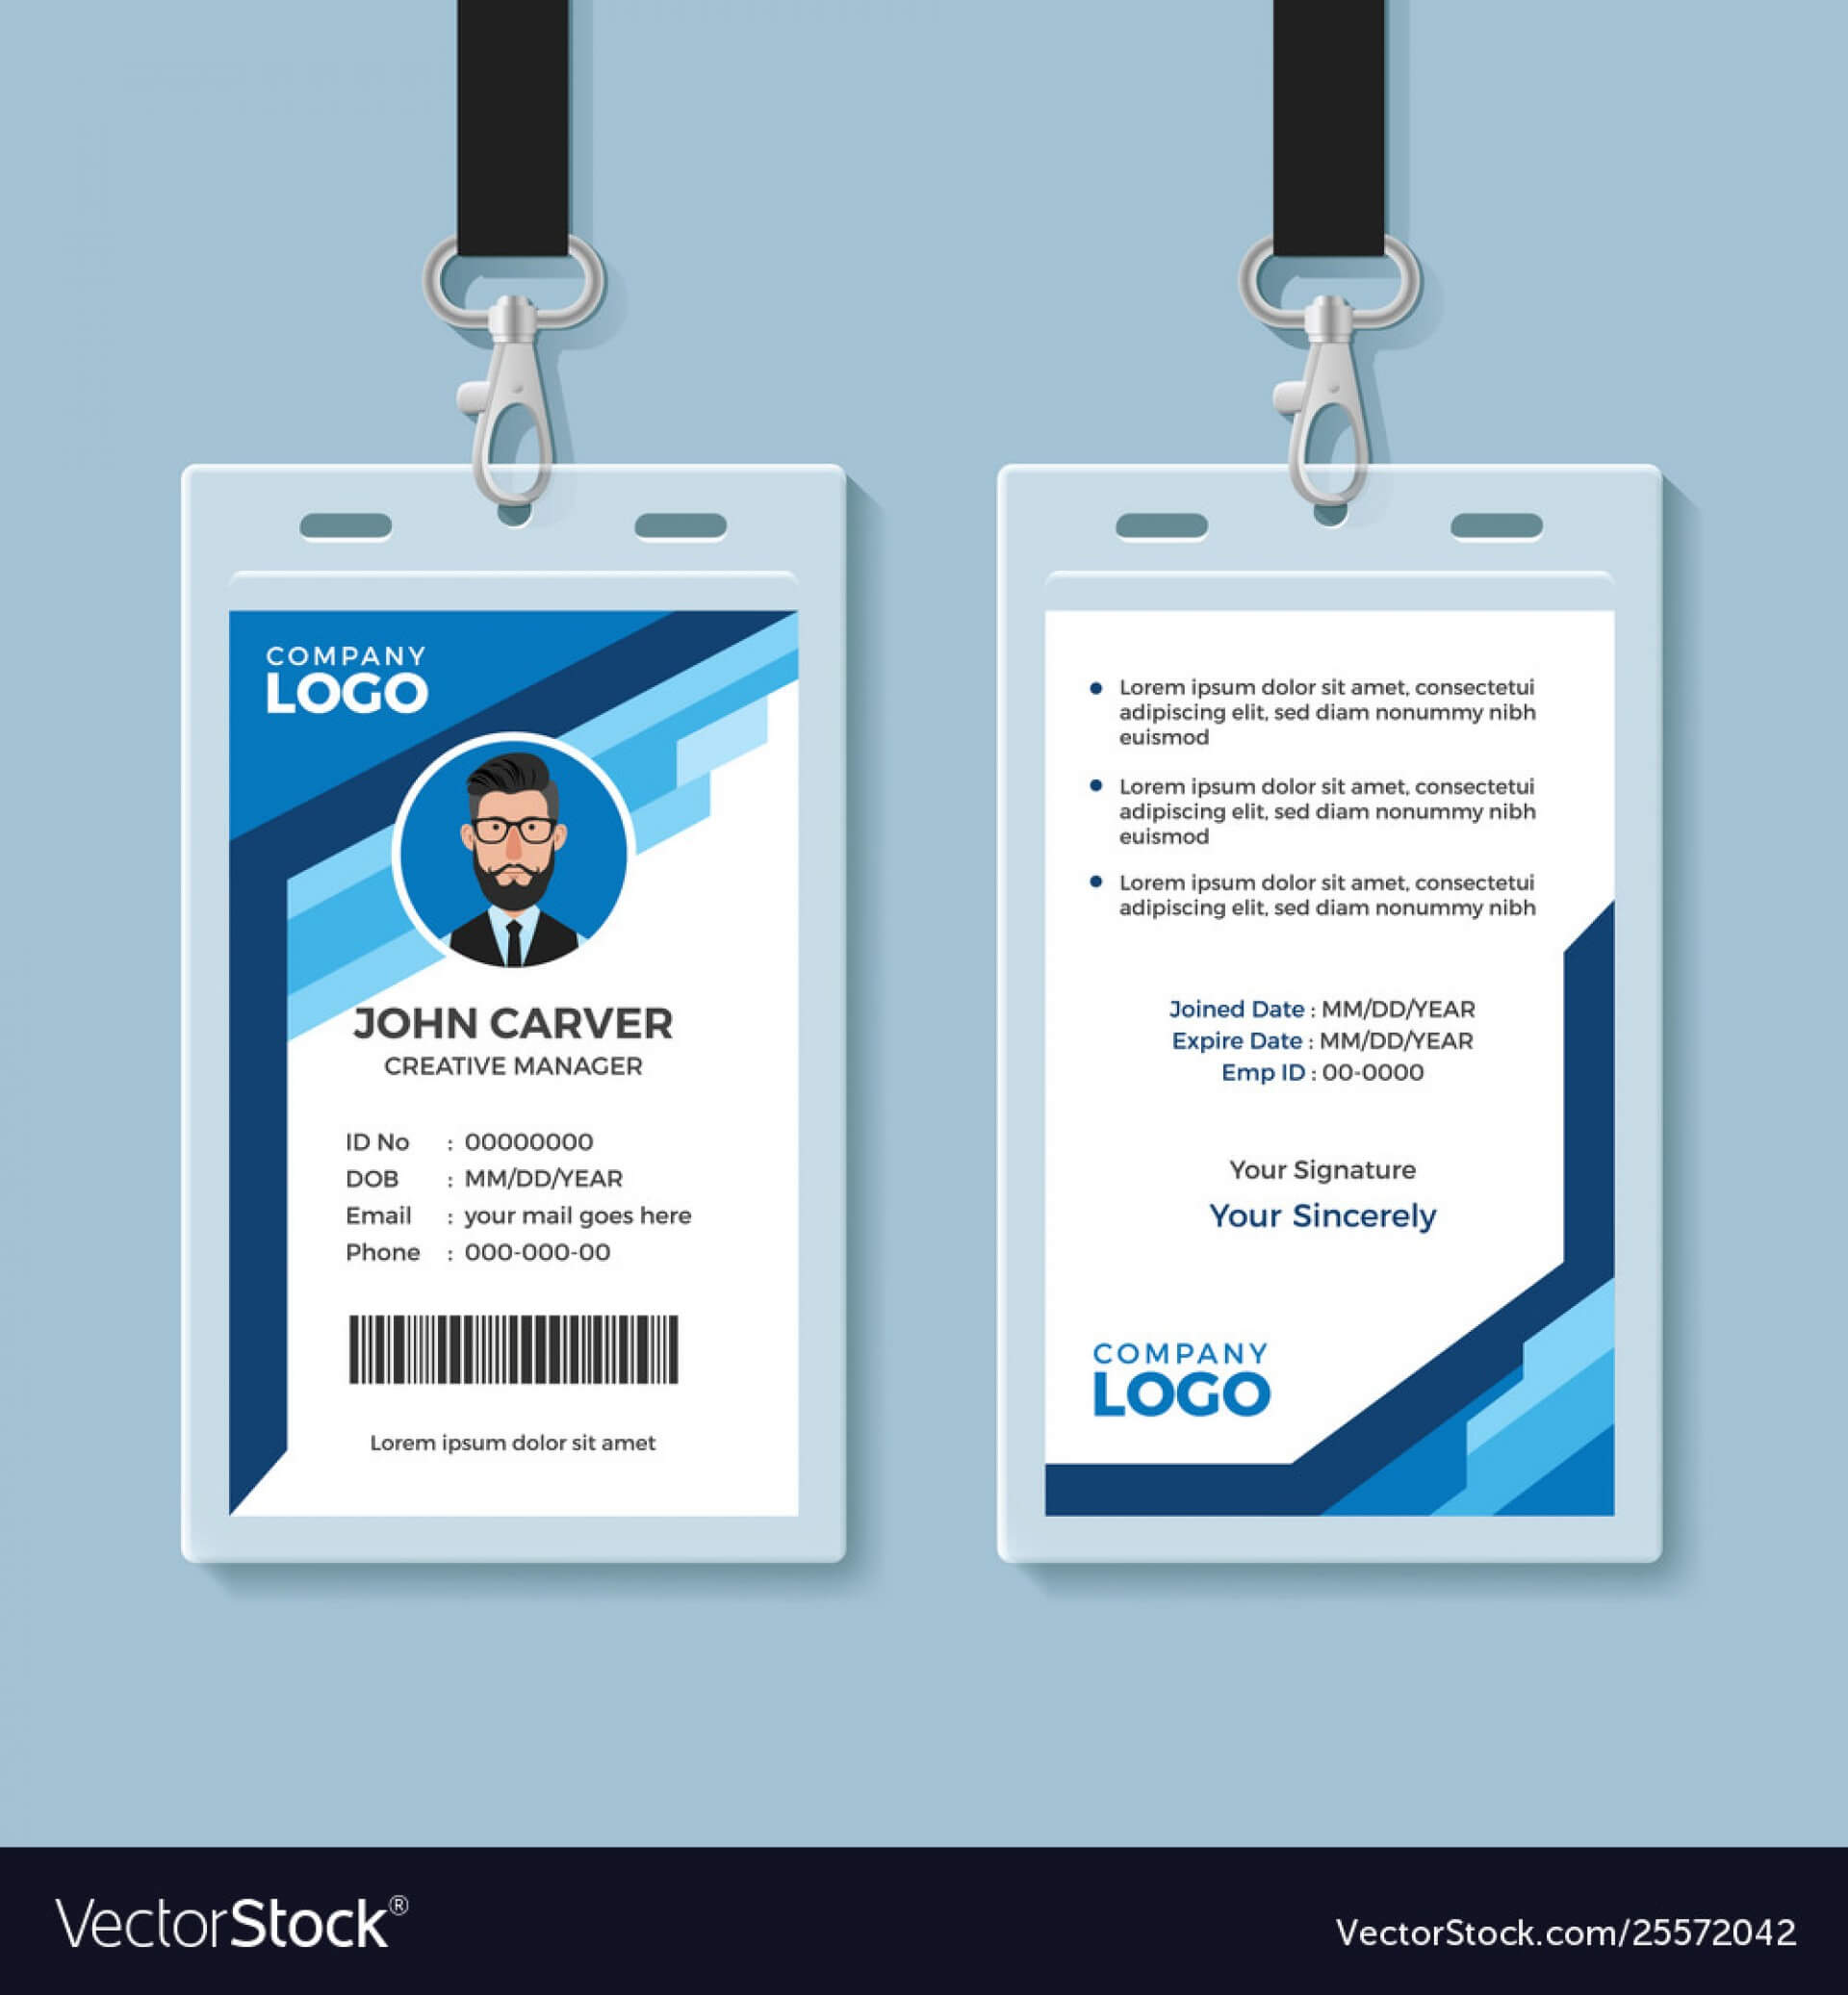 022 Template Ideas Employee Id Card Ai Free Exceptional Intended For Id Card Template Ai